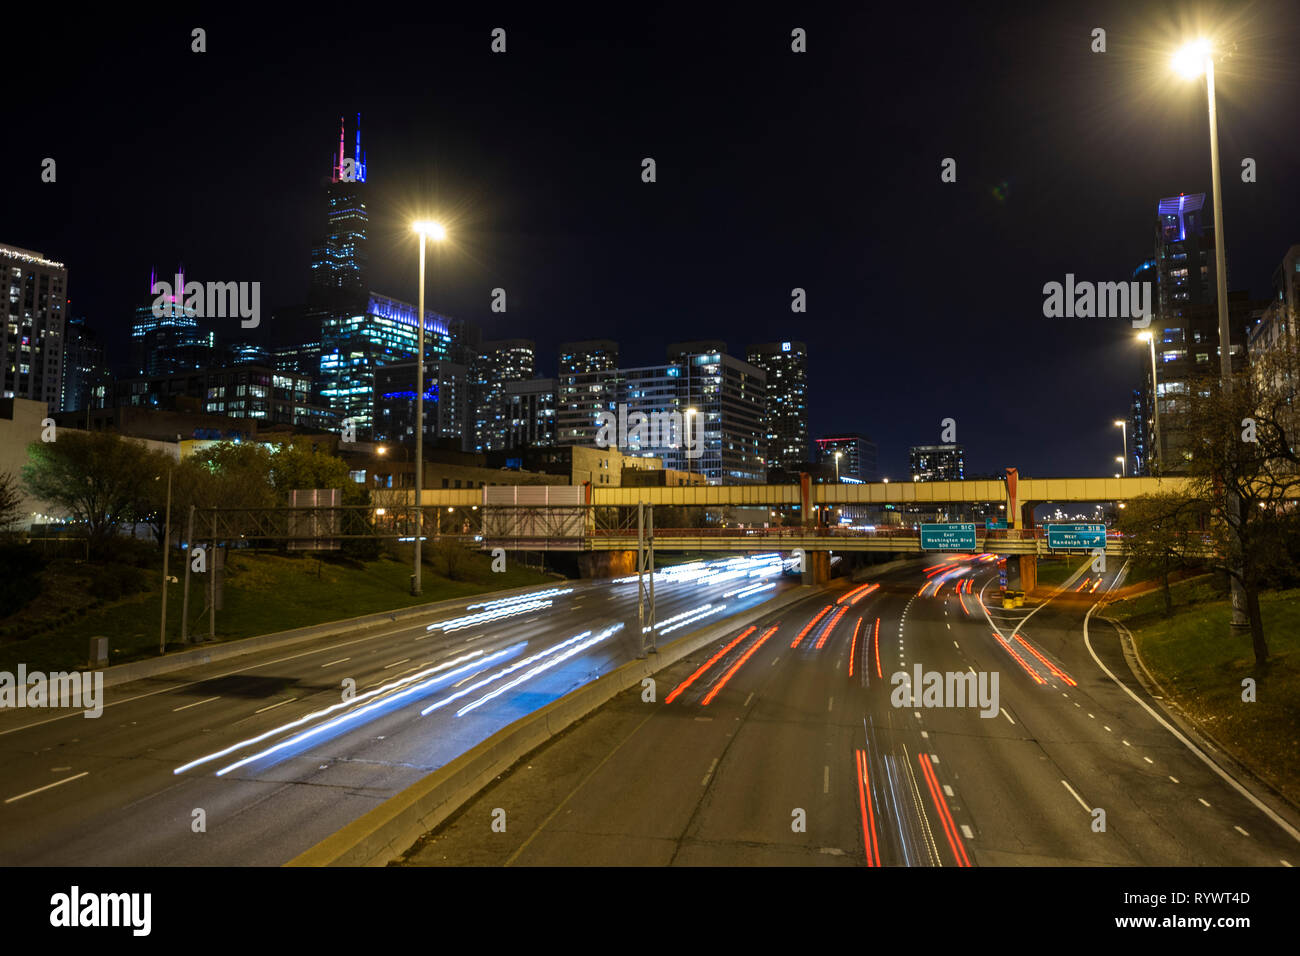 Long exposure shot of the traffic on one of Chicago's interstates. - Stock Image